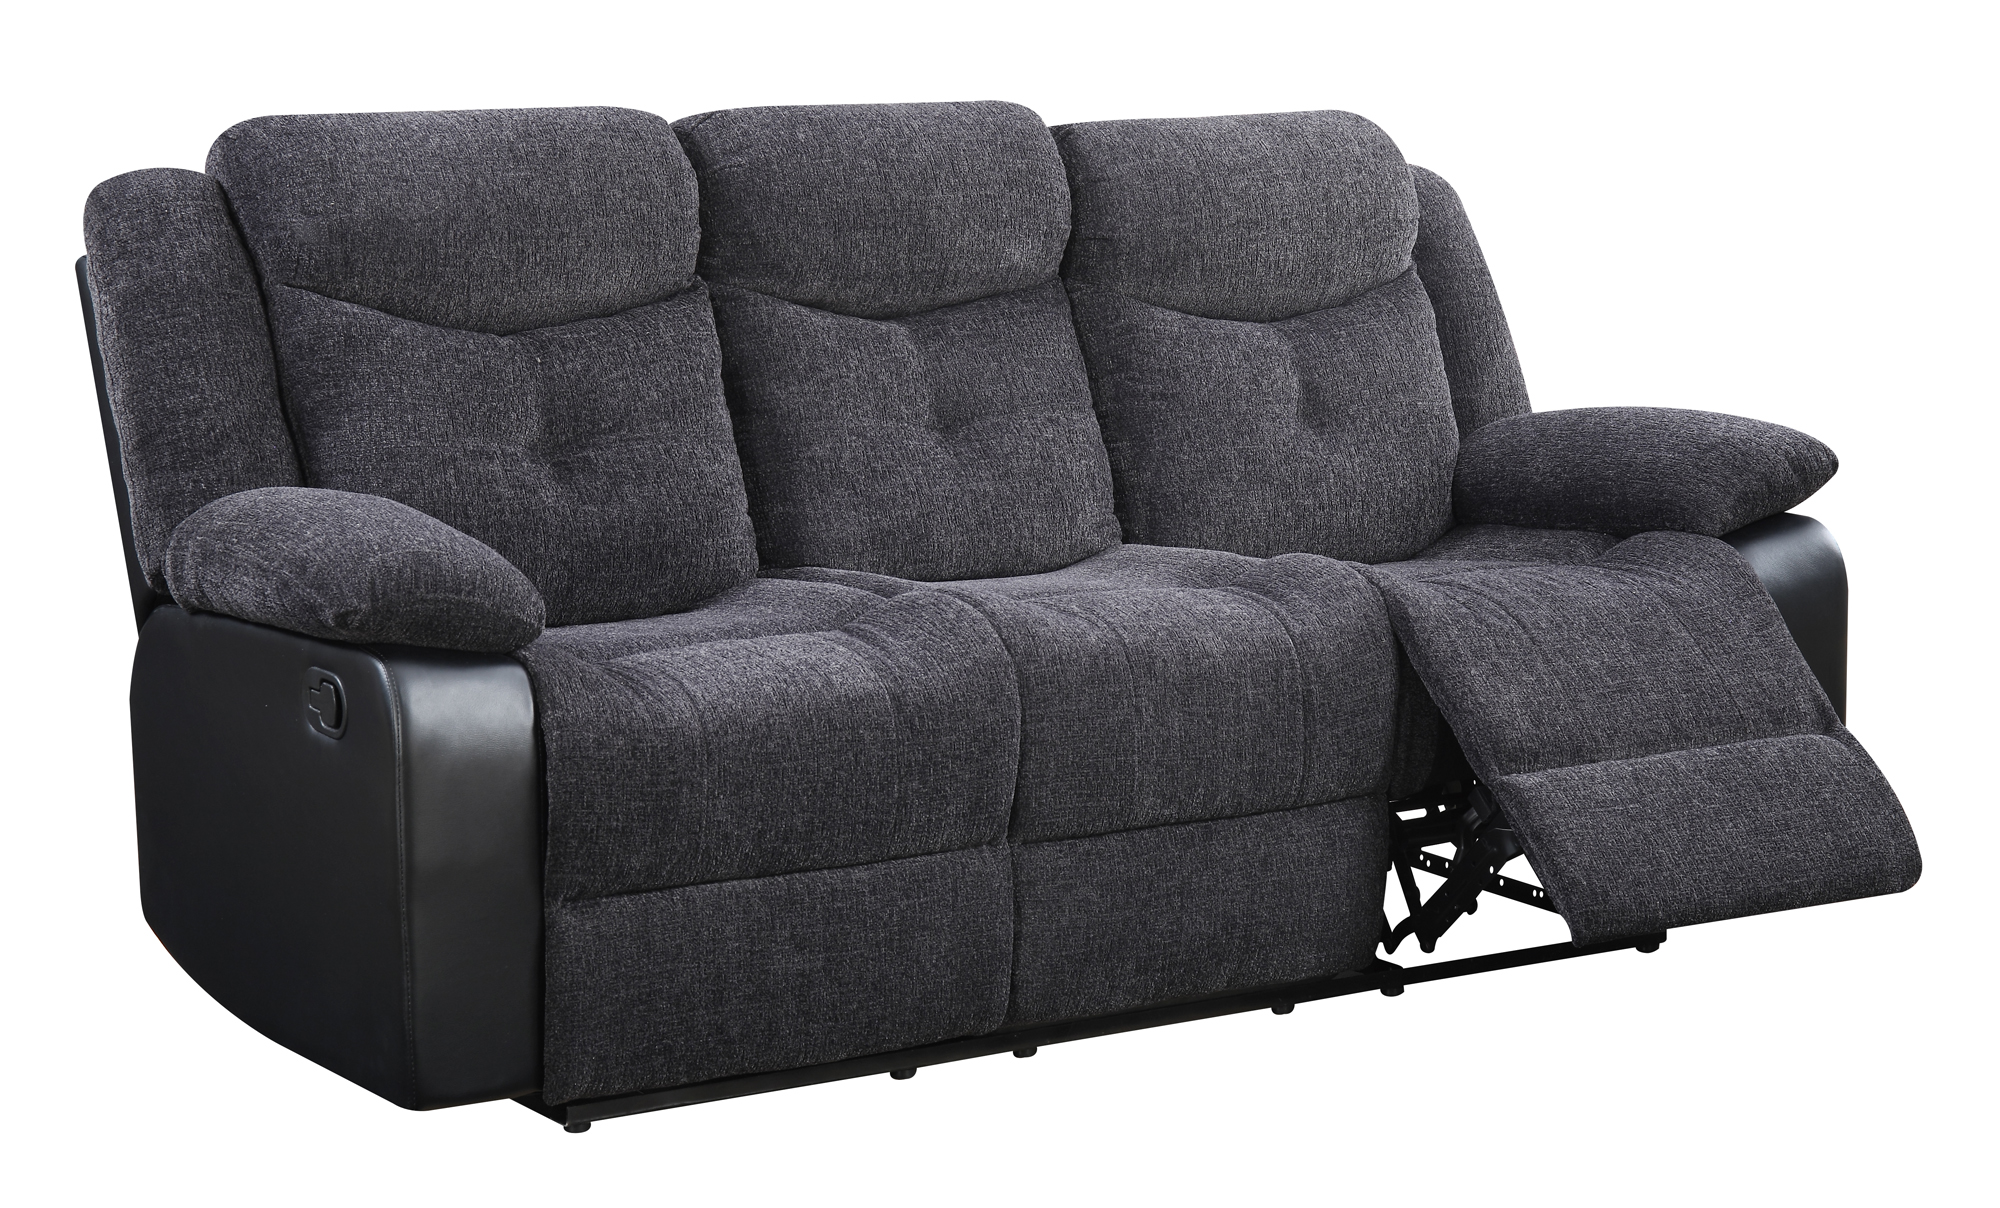 U1566 Mouse Fabric Reclining Sofa by Global Furniture